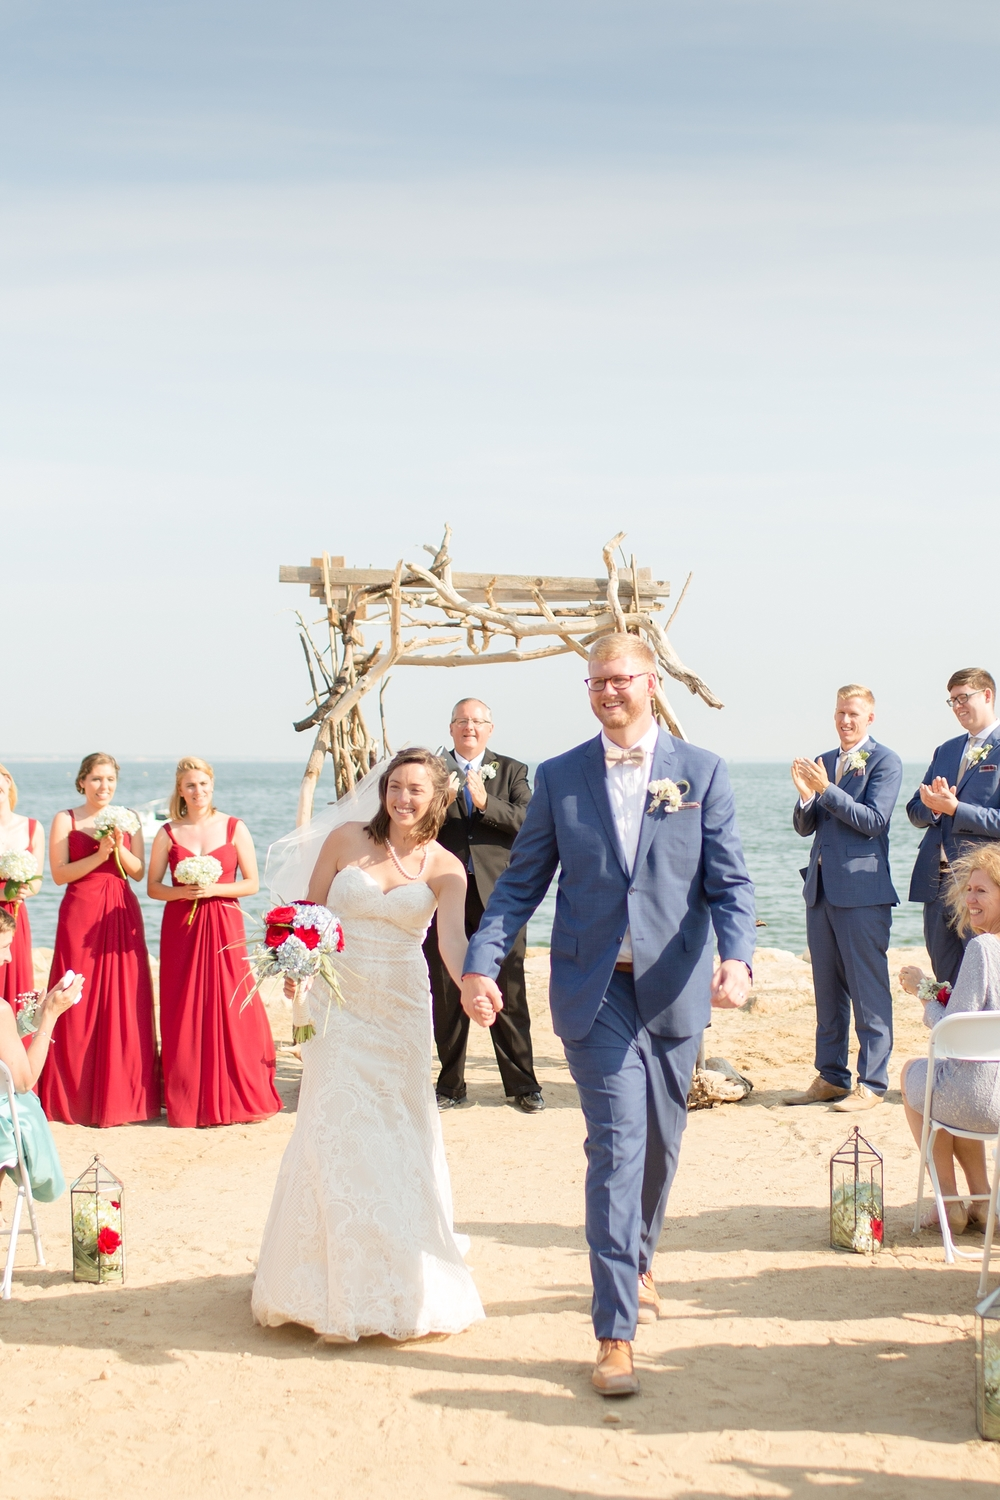 Goodman 5-Ceremony-694_anna grace photography wellfleet cape cod massachusetts destination wedding photographer Chequessett Yacht and Country Club wedding photo.jpg